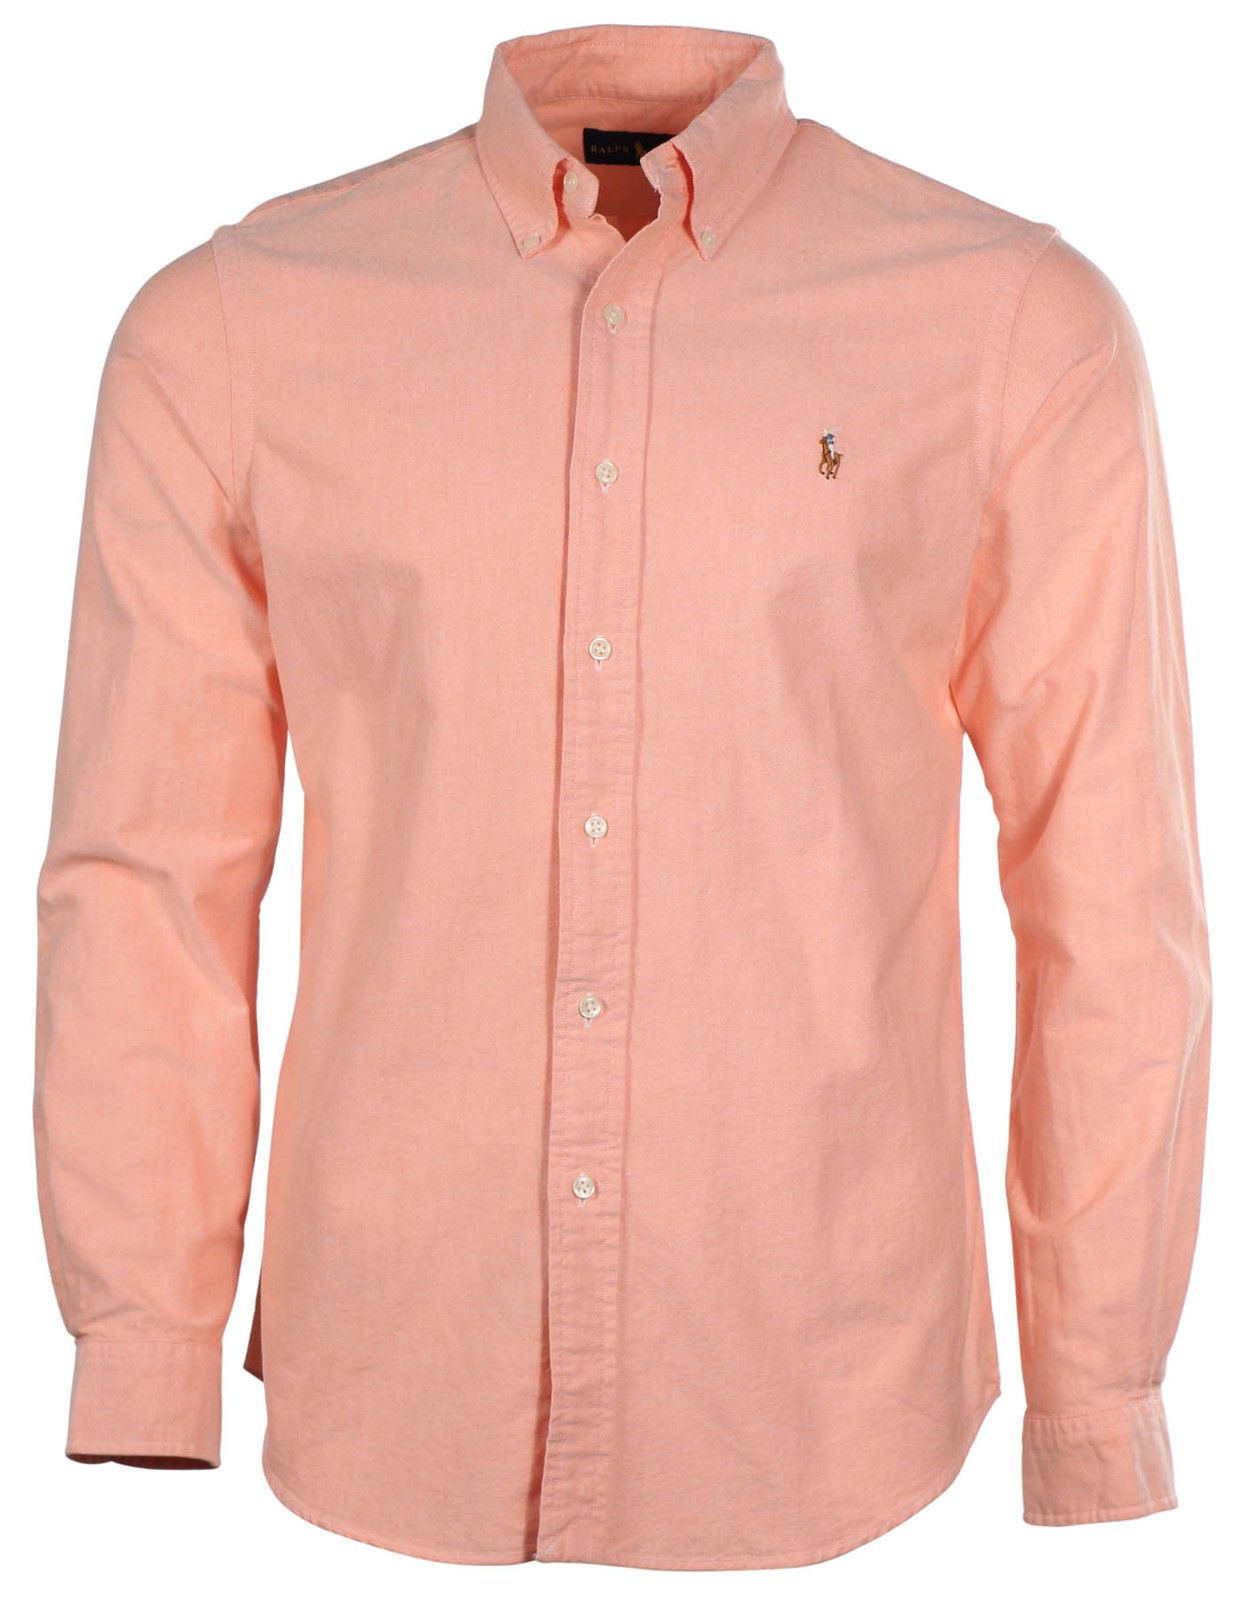 Polo Ralph Lauren Mens Long Sleeve Oxford Button Down Shirt